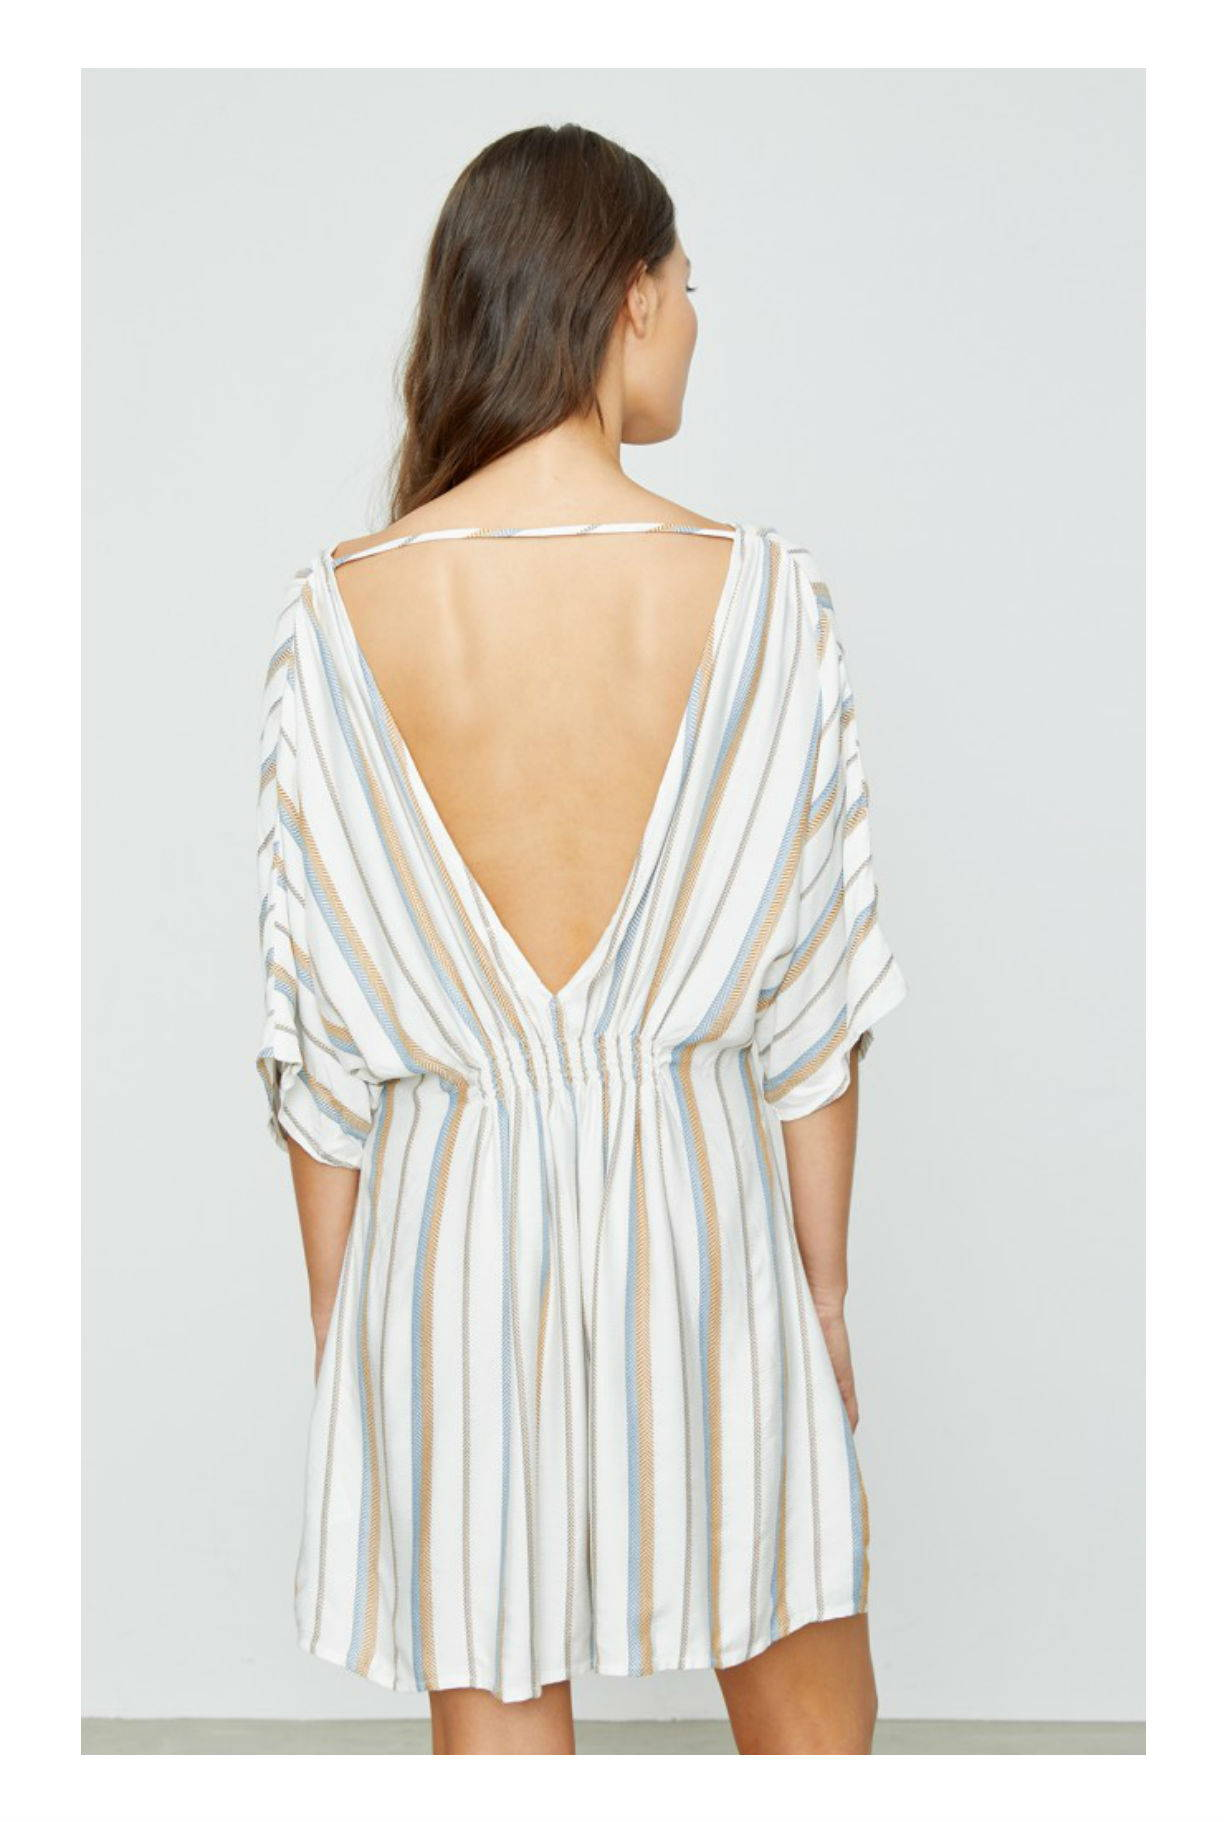 Onia Alessandra Cover Up